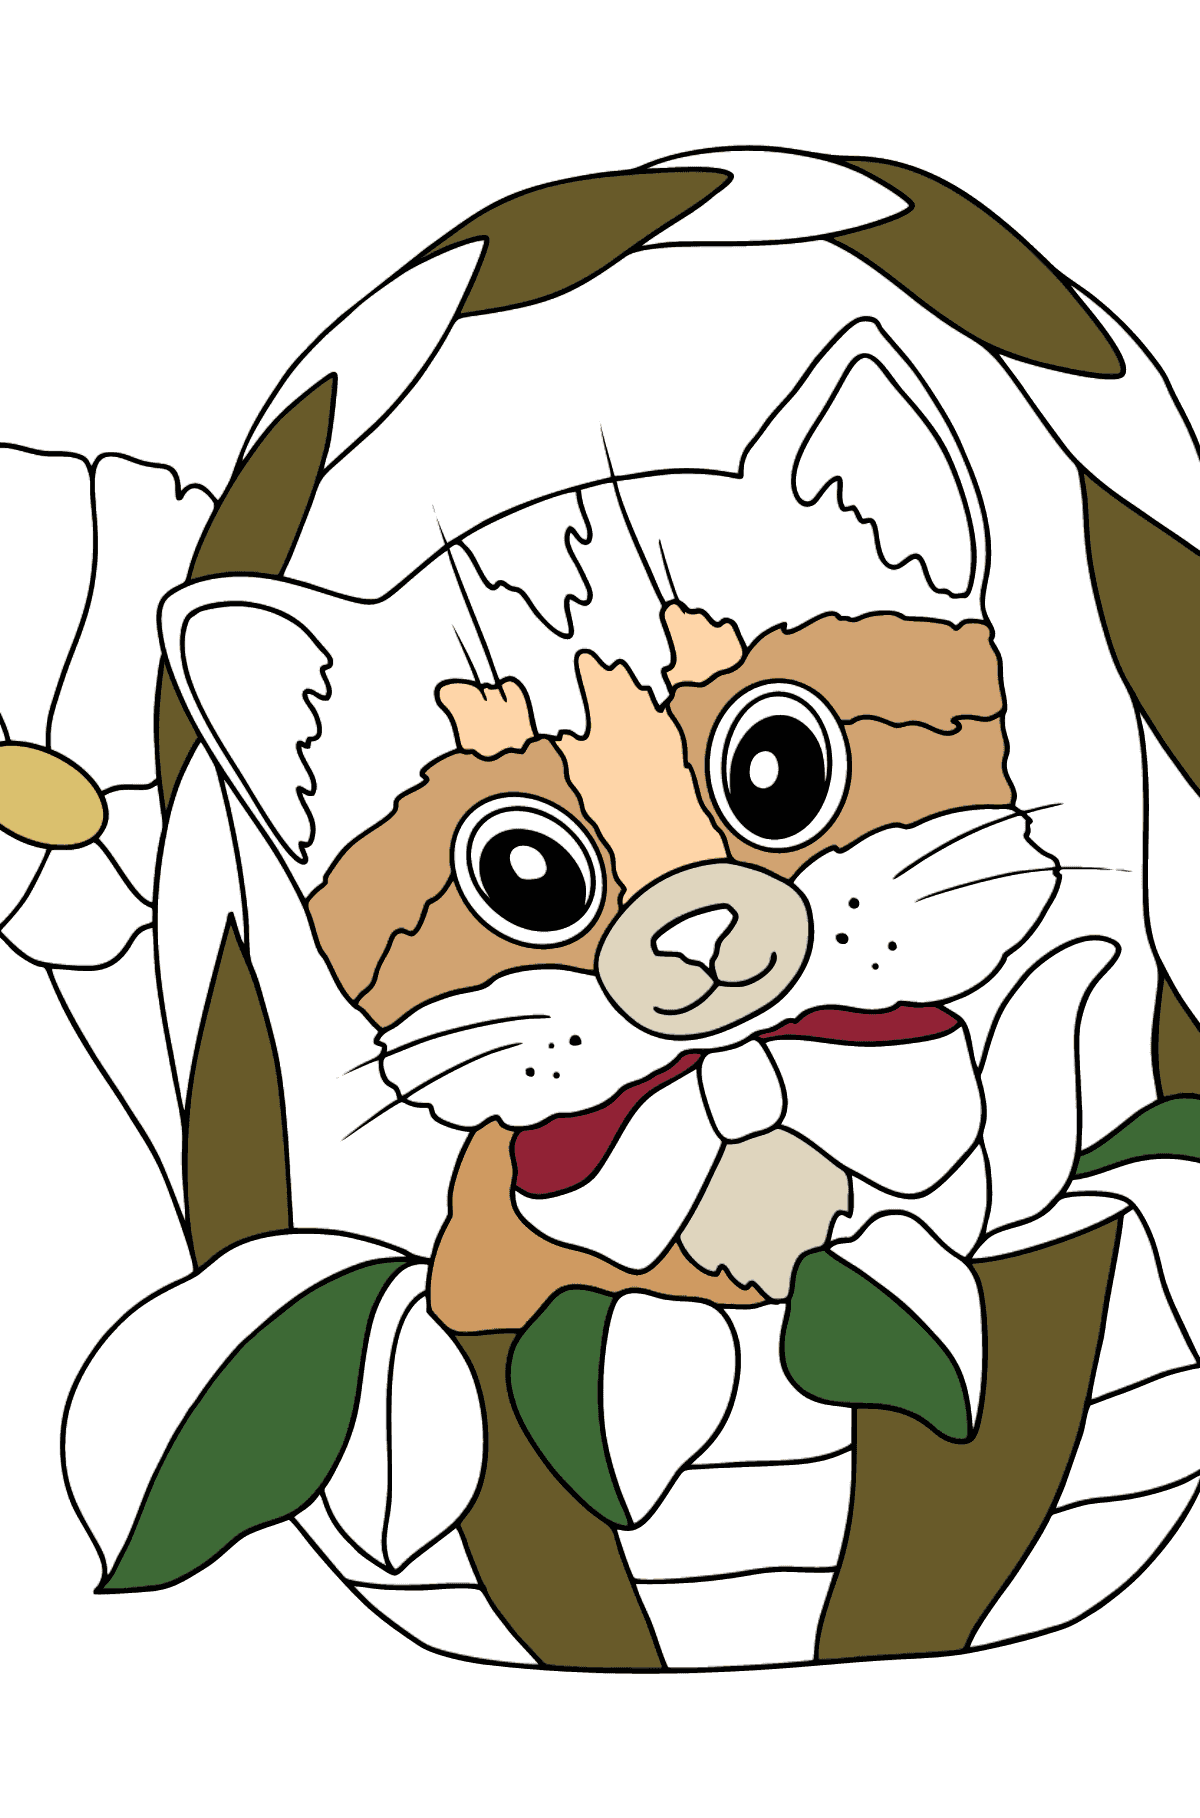 Coloring Page - A Cat is Hiding in a Basket - Coloring Pages for Kids